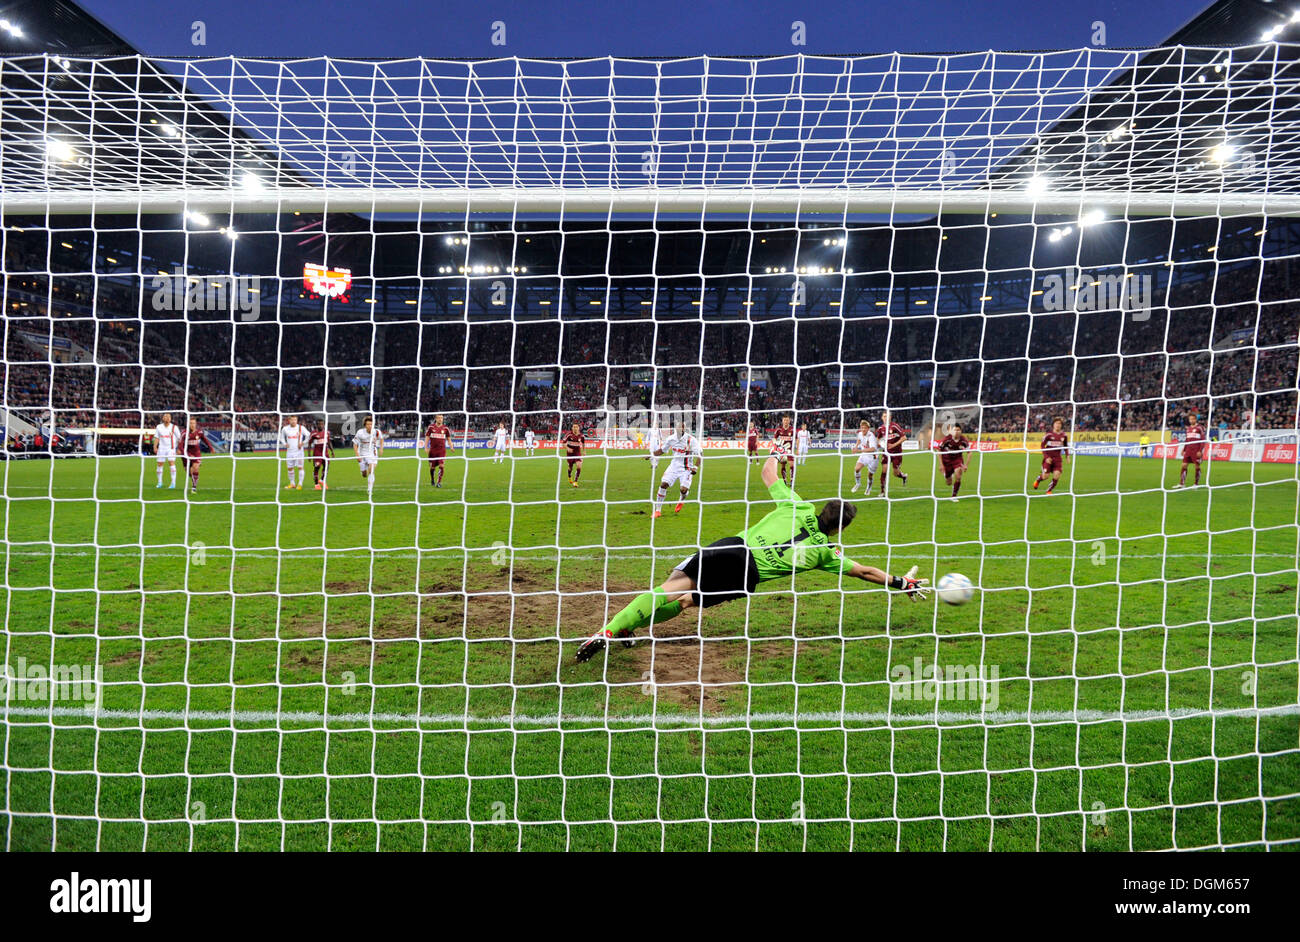 Camera shot from behind the goal, penalty to 1:0 by Nando Rafael, FC Augsburg, against the goalkeeper Sven Ulreich - Stock Image